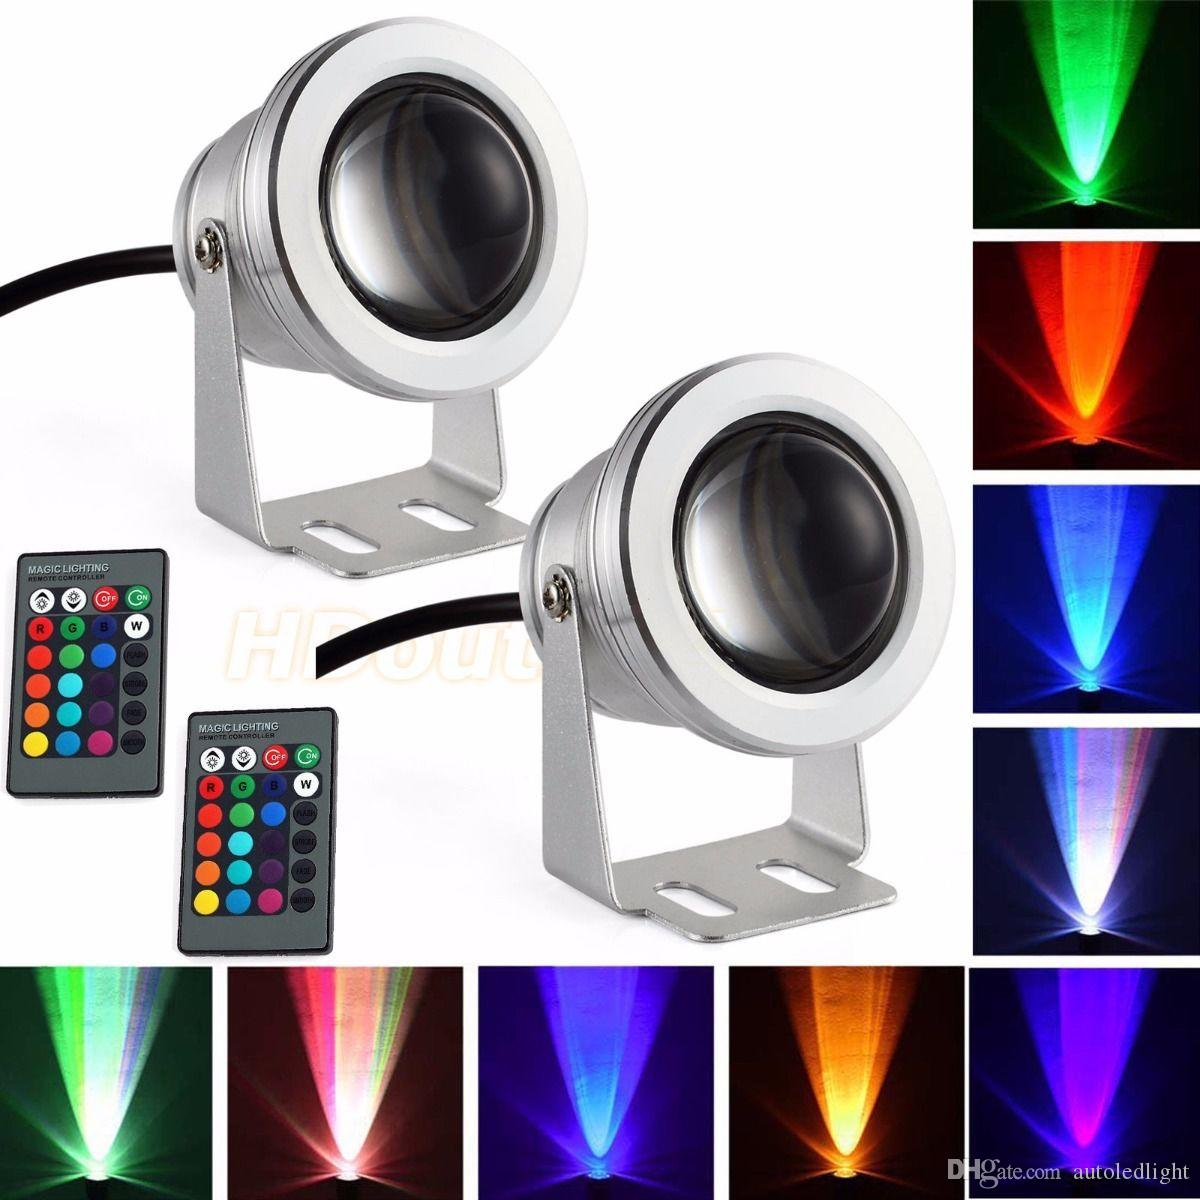 Marine Hardware Boat Parts & Accessories Provided 12v Marine Boat Decoration Light Rgb Led Underwater Light Pond Swimming Pool Waterproof Lamp Colorful